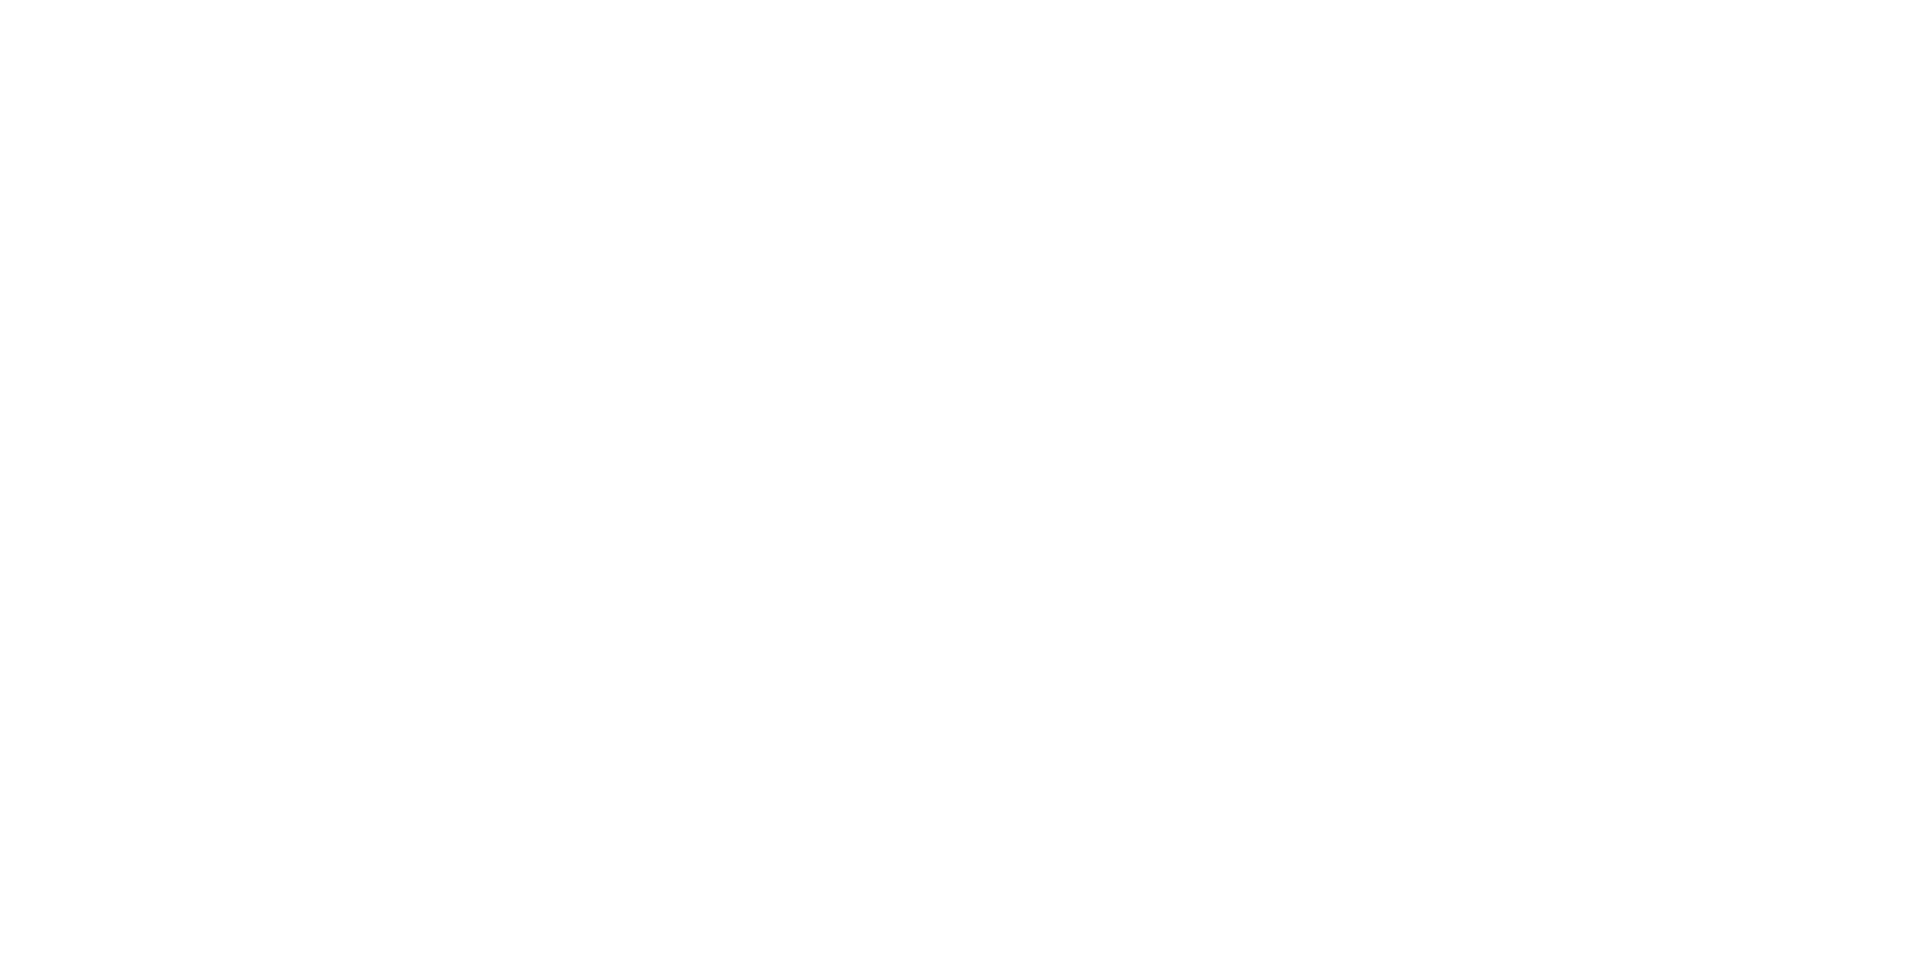 The secret Closet logo